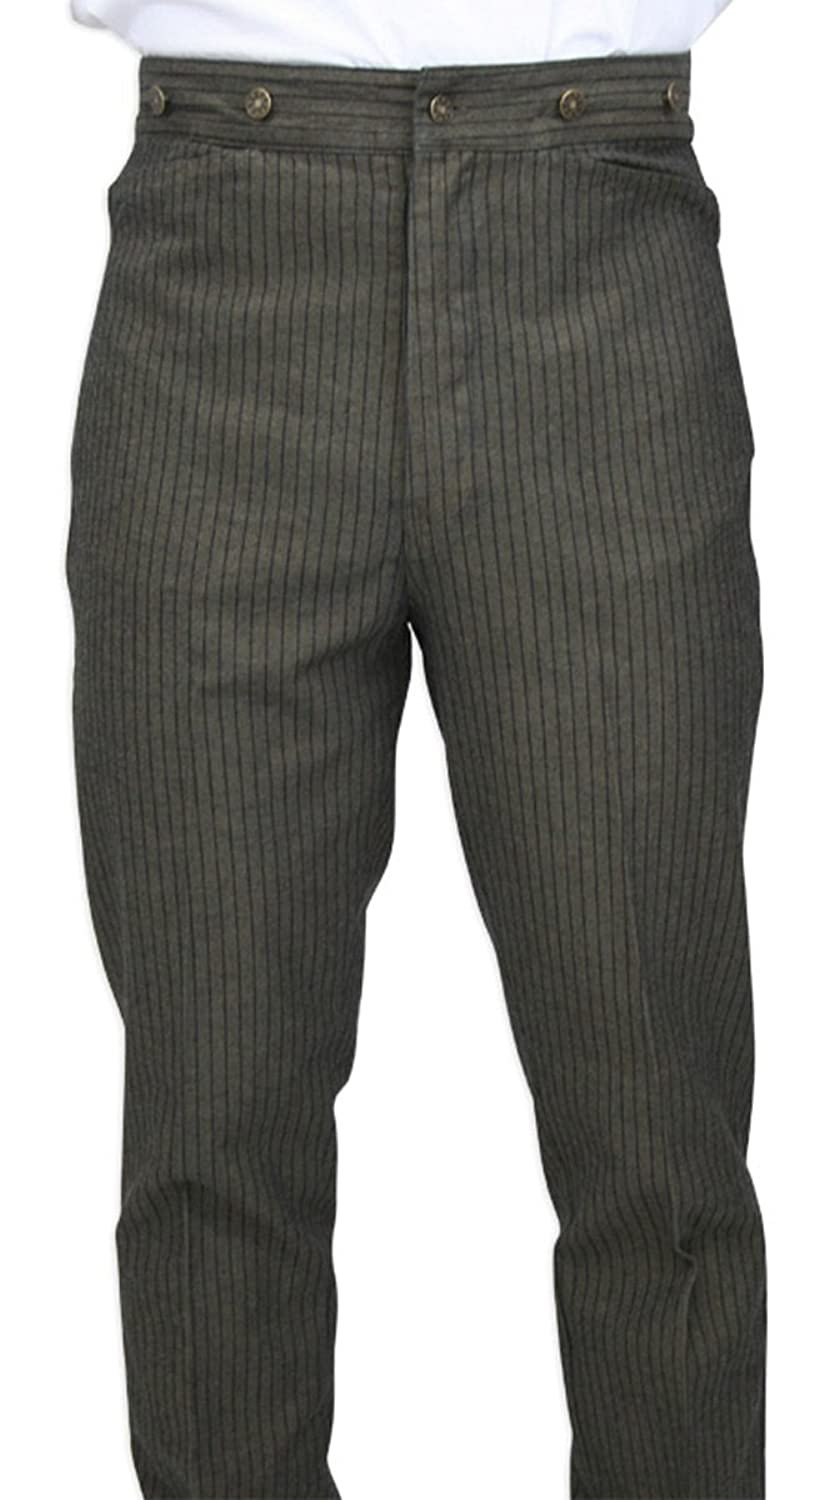 1920s Style Men's Pants & Plus Four Knickers High Waist Cotton Ludlow Striped Trousers $59.95 AT vintagedancer.com